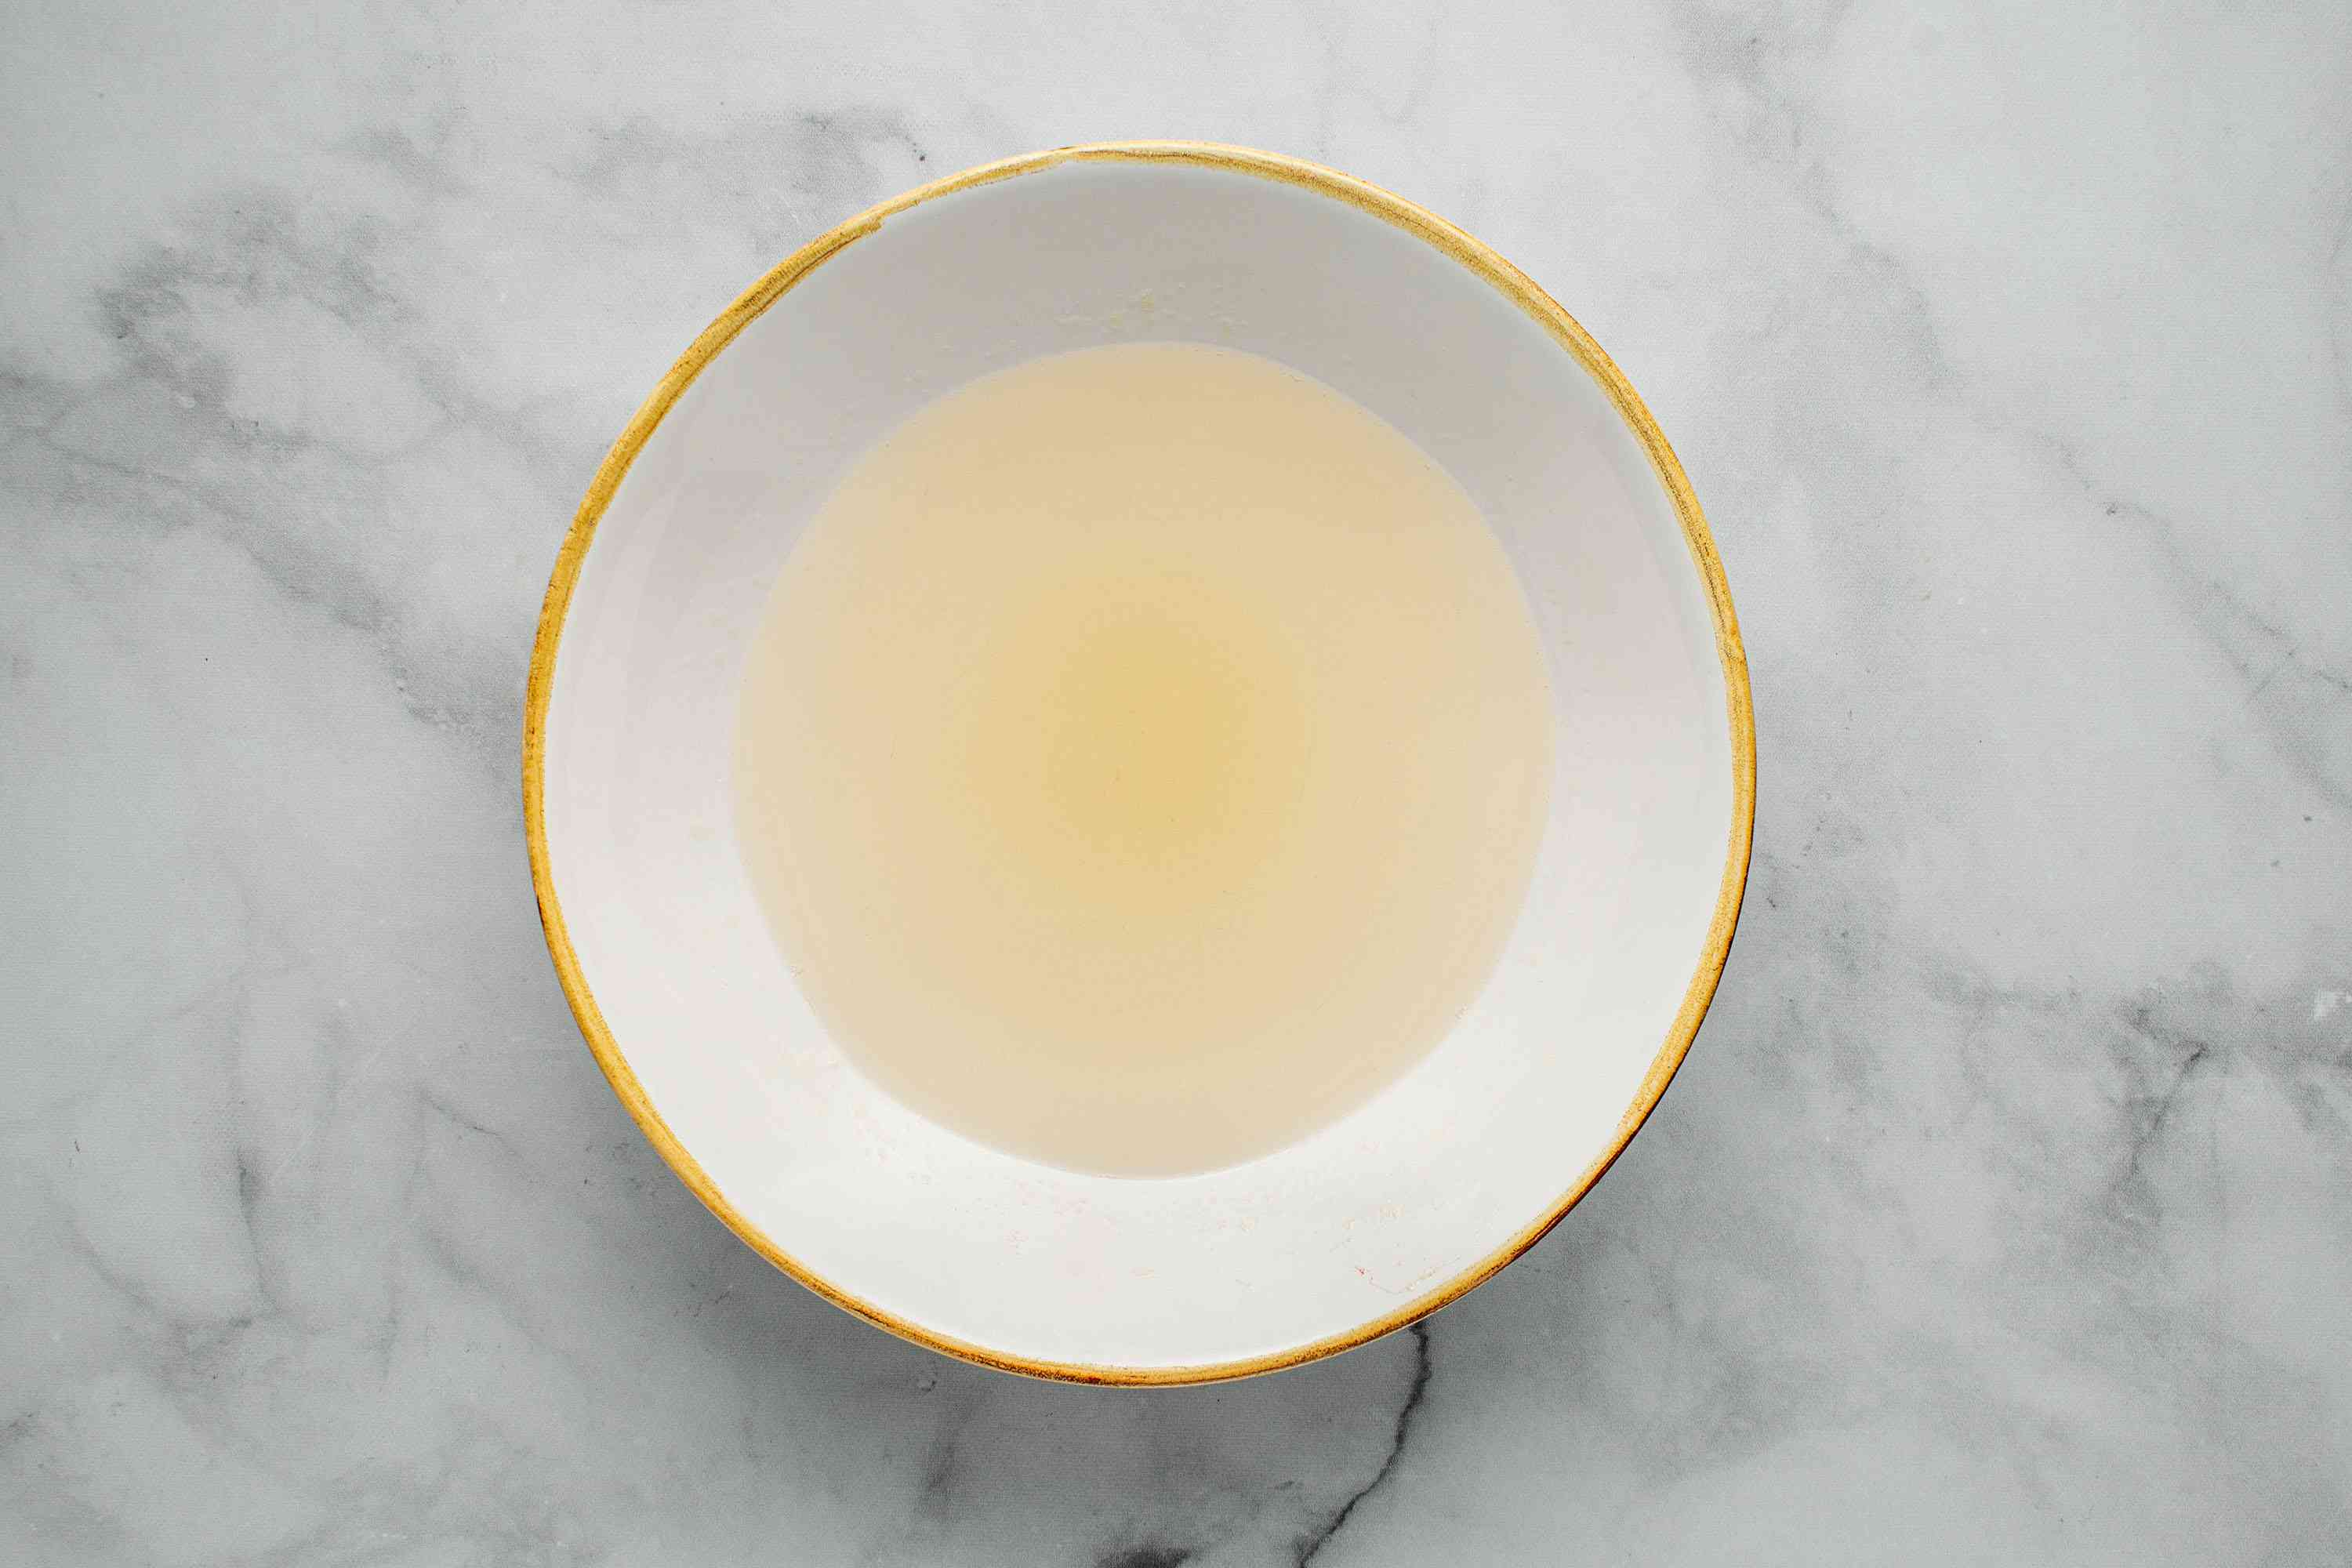 gelatin and water mixture in a bowl